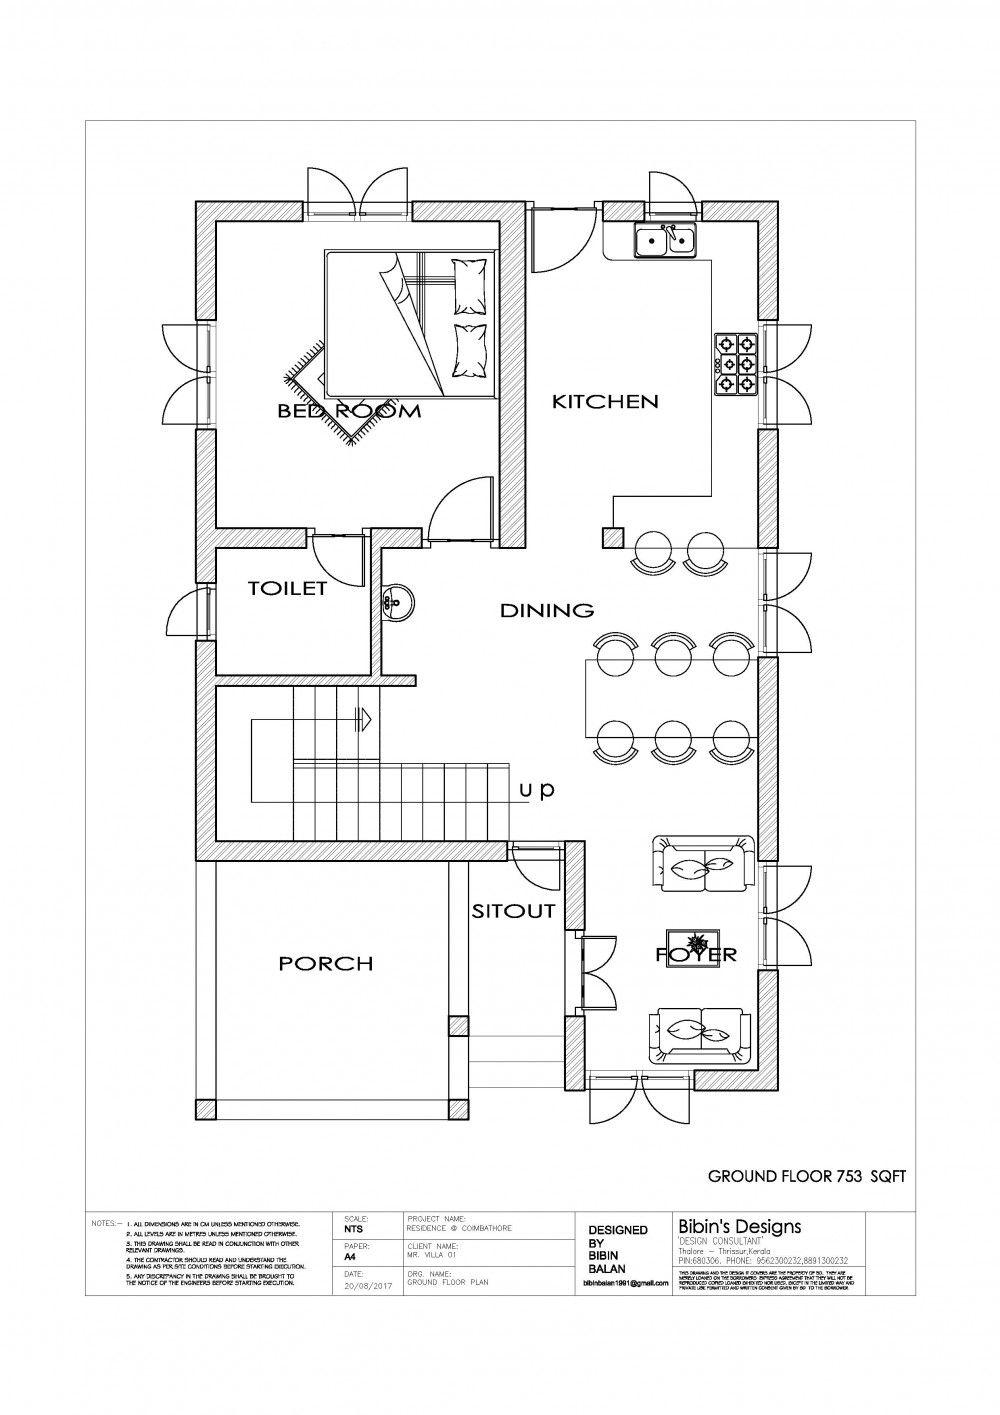 Pin By Zhila Ab On 2bedroom Free House Plans Two Story House Plans House Plans